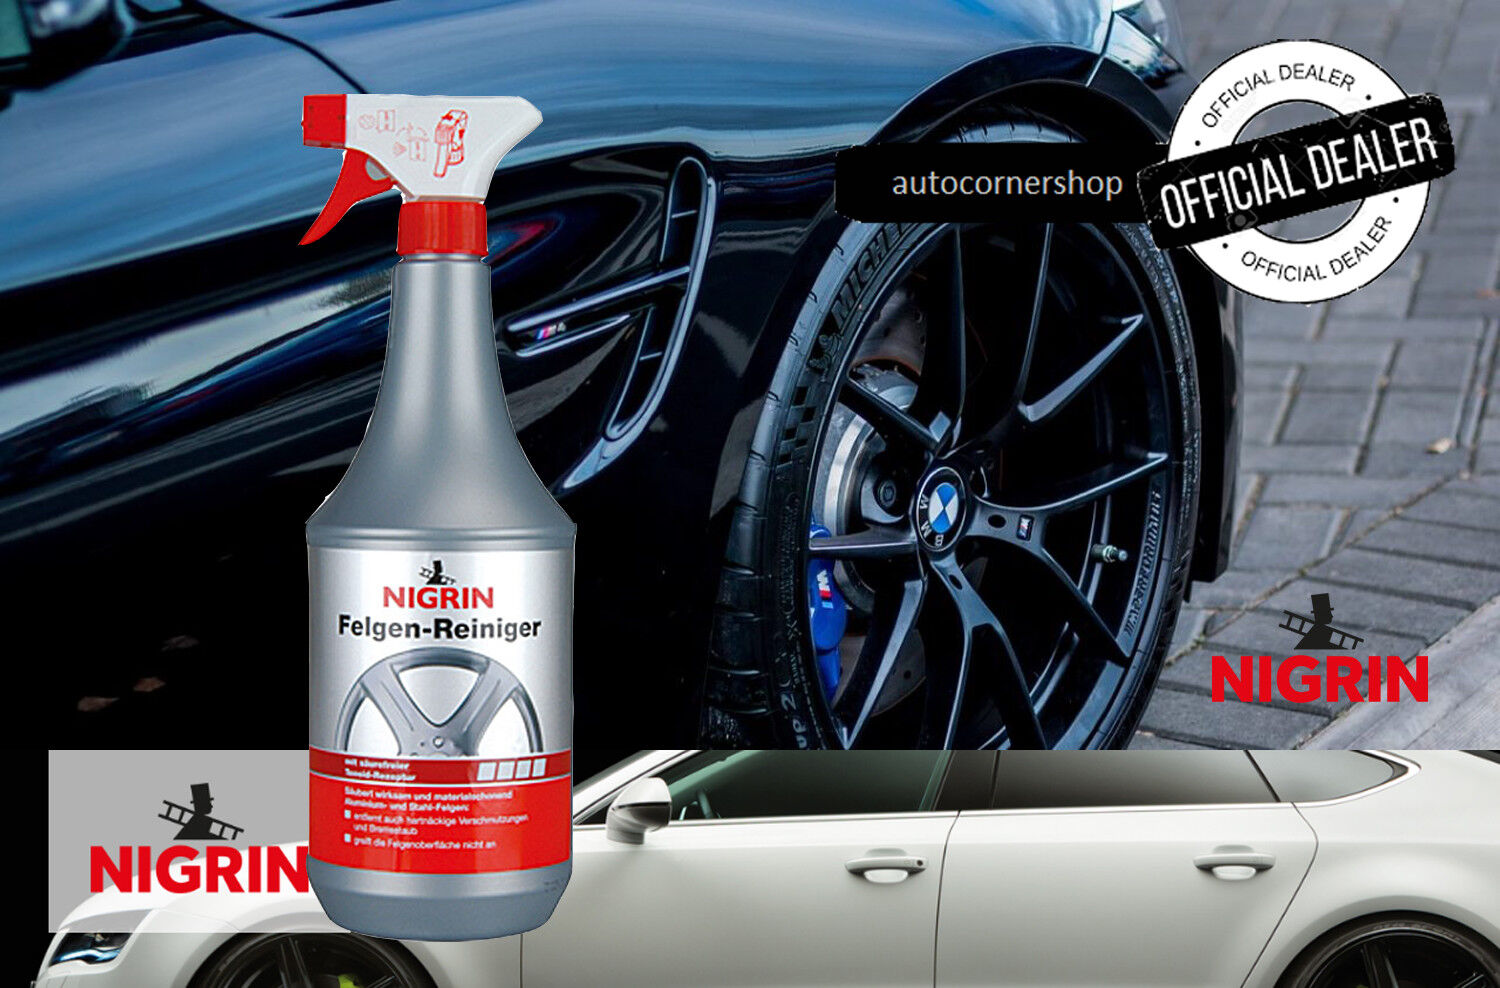 NIGRIN aluminum and steel rims cleaner 1000 ml. For Cars Trucks Motorcycles Vans